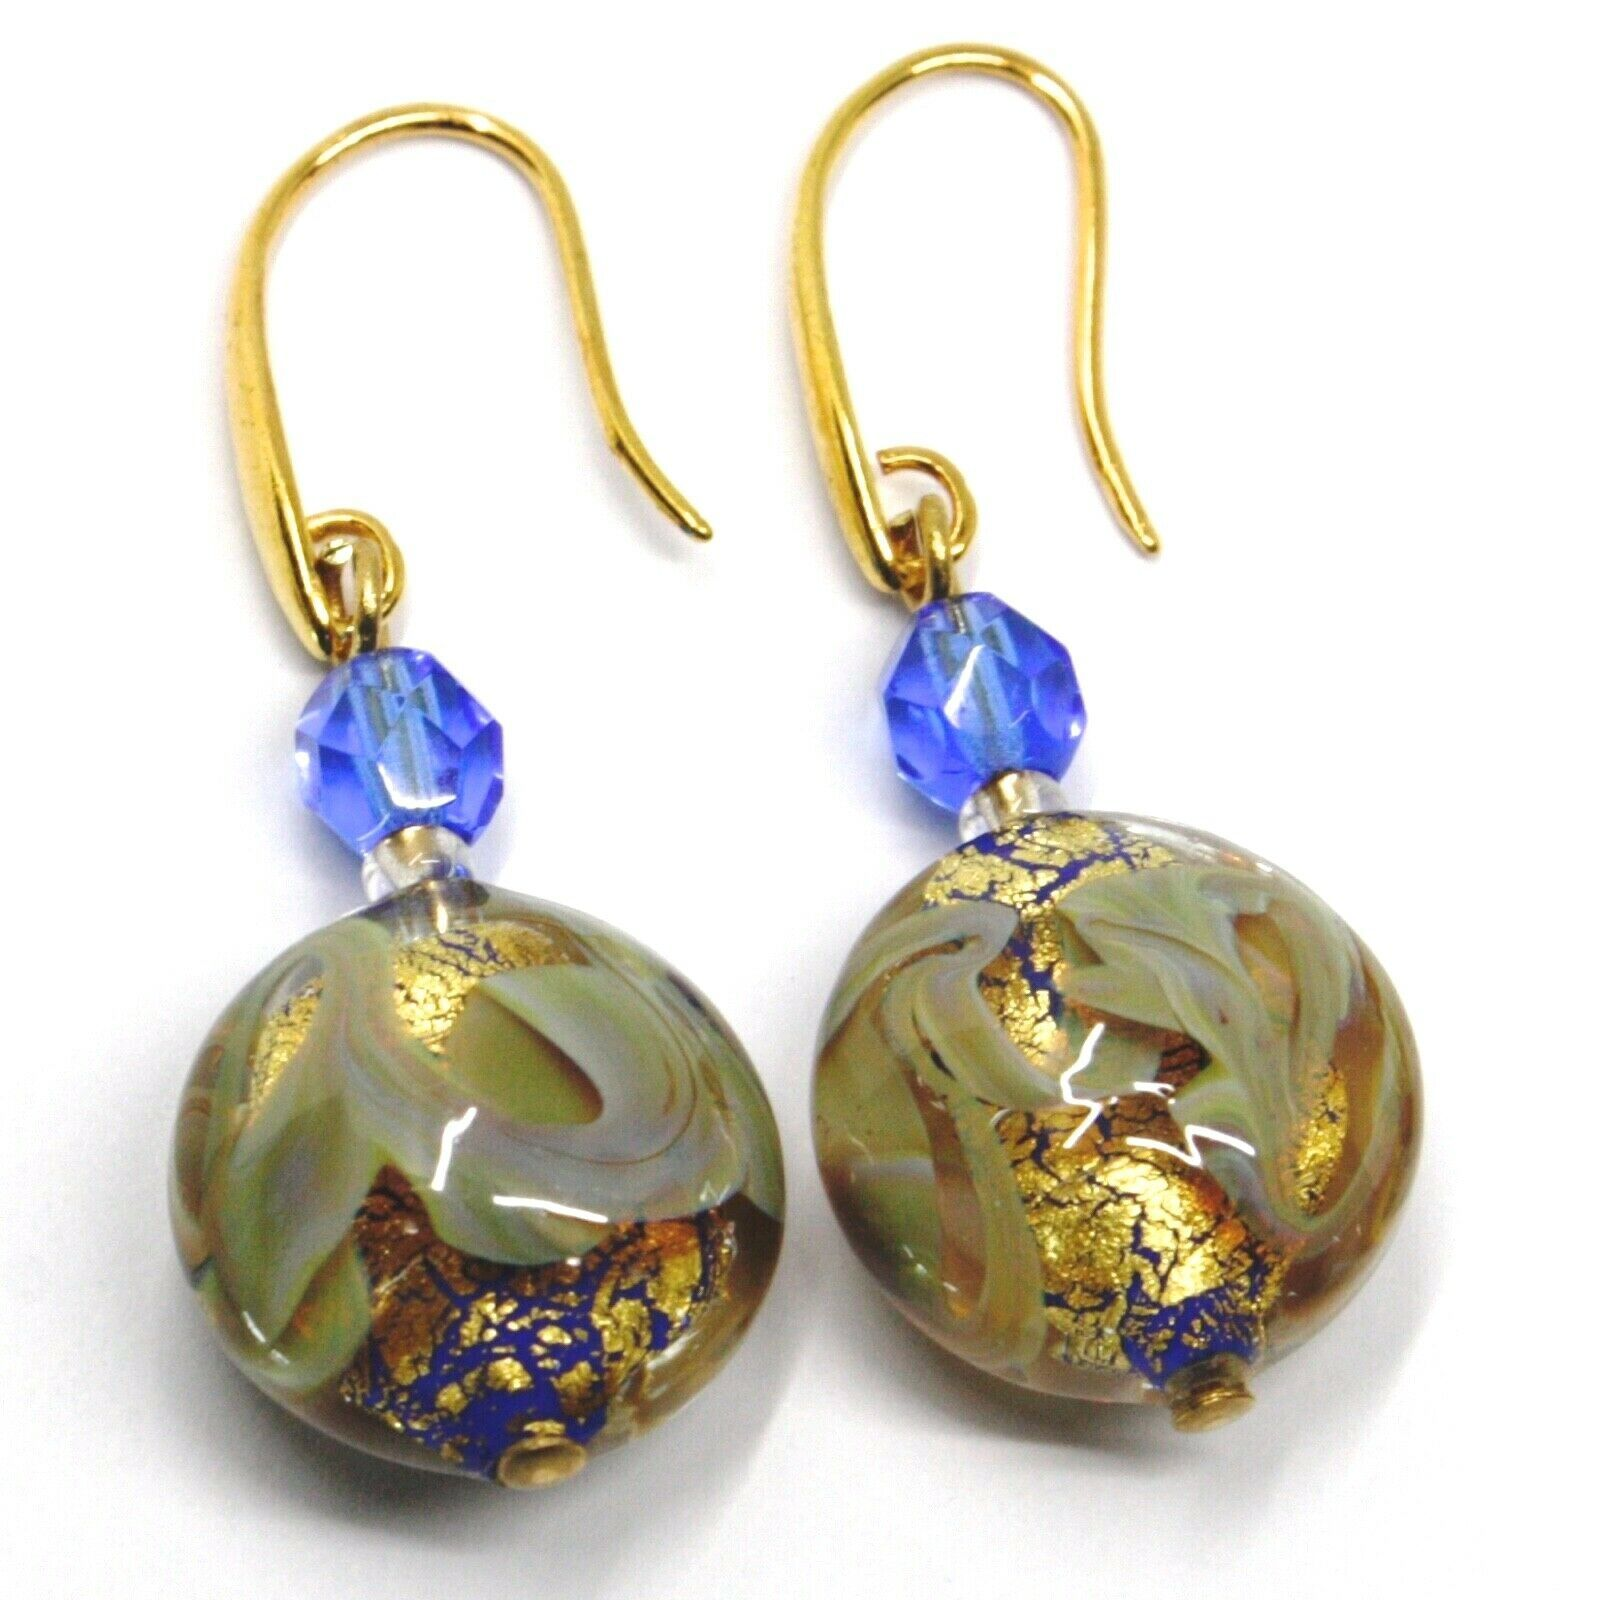 PENDANT HOOK EARRINGS BLUE YELLOW DISC MURANO GLASS GOLD LEAF MADE IN ITALY